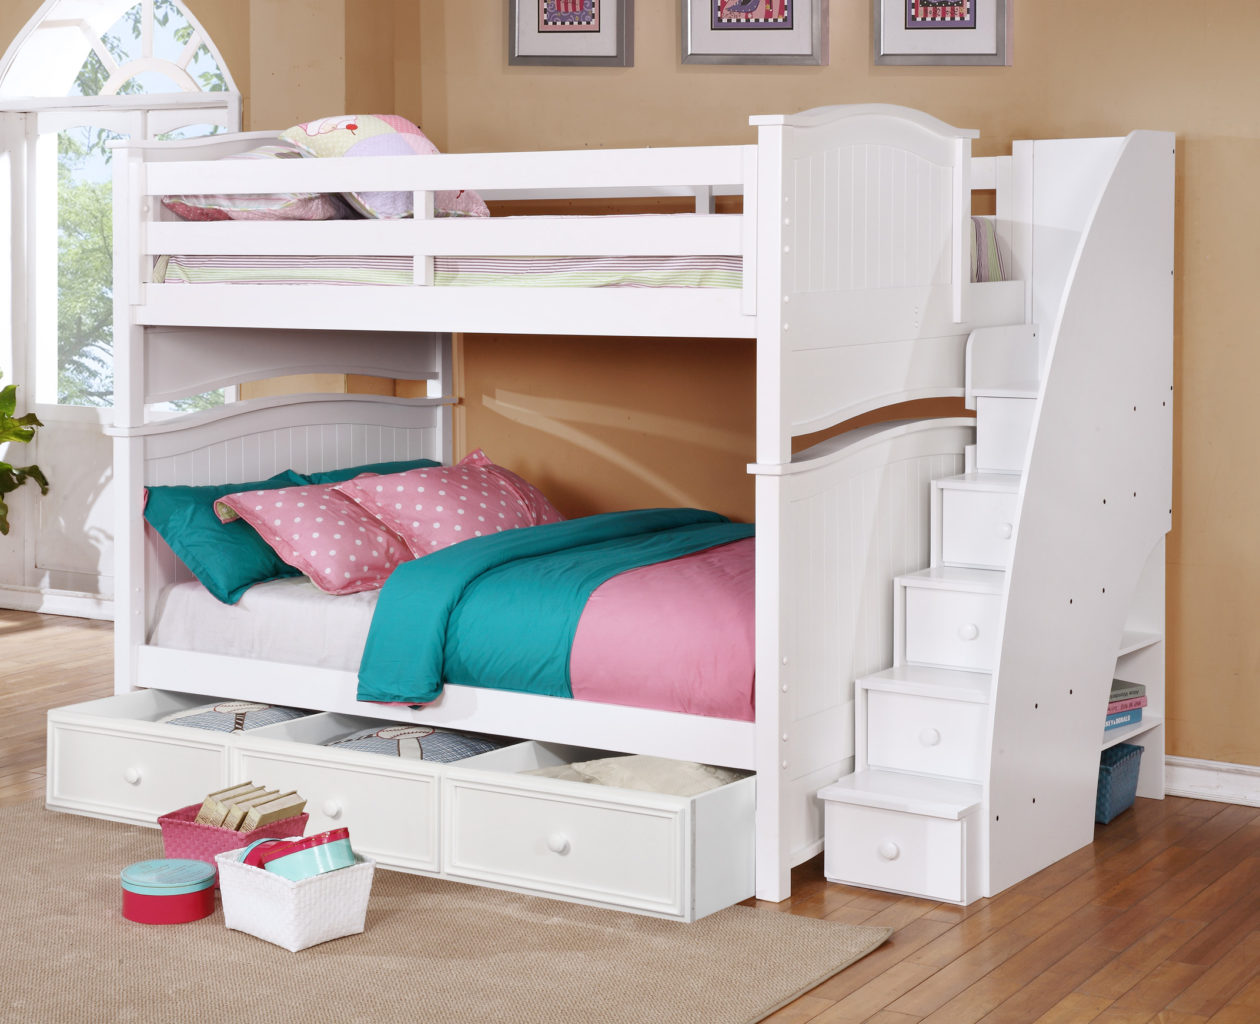 Bed Over Stair Box With Storage And Stairs: Ashton Full Over Full Bunk Bed With Staircase And